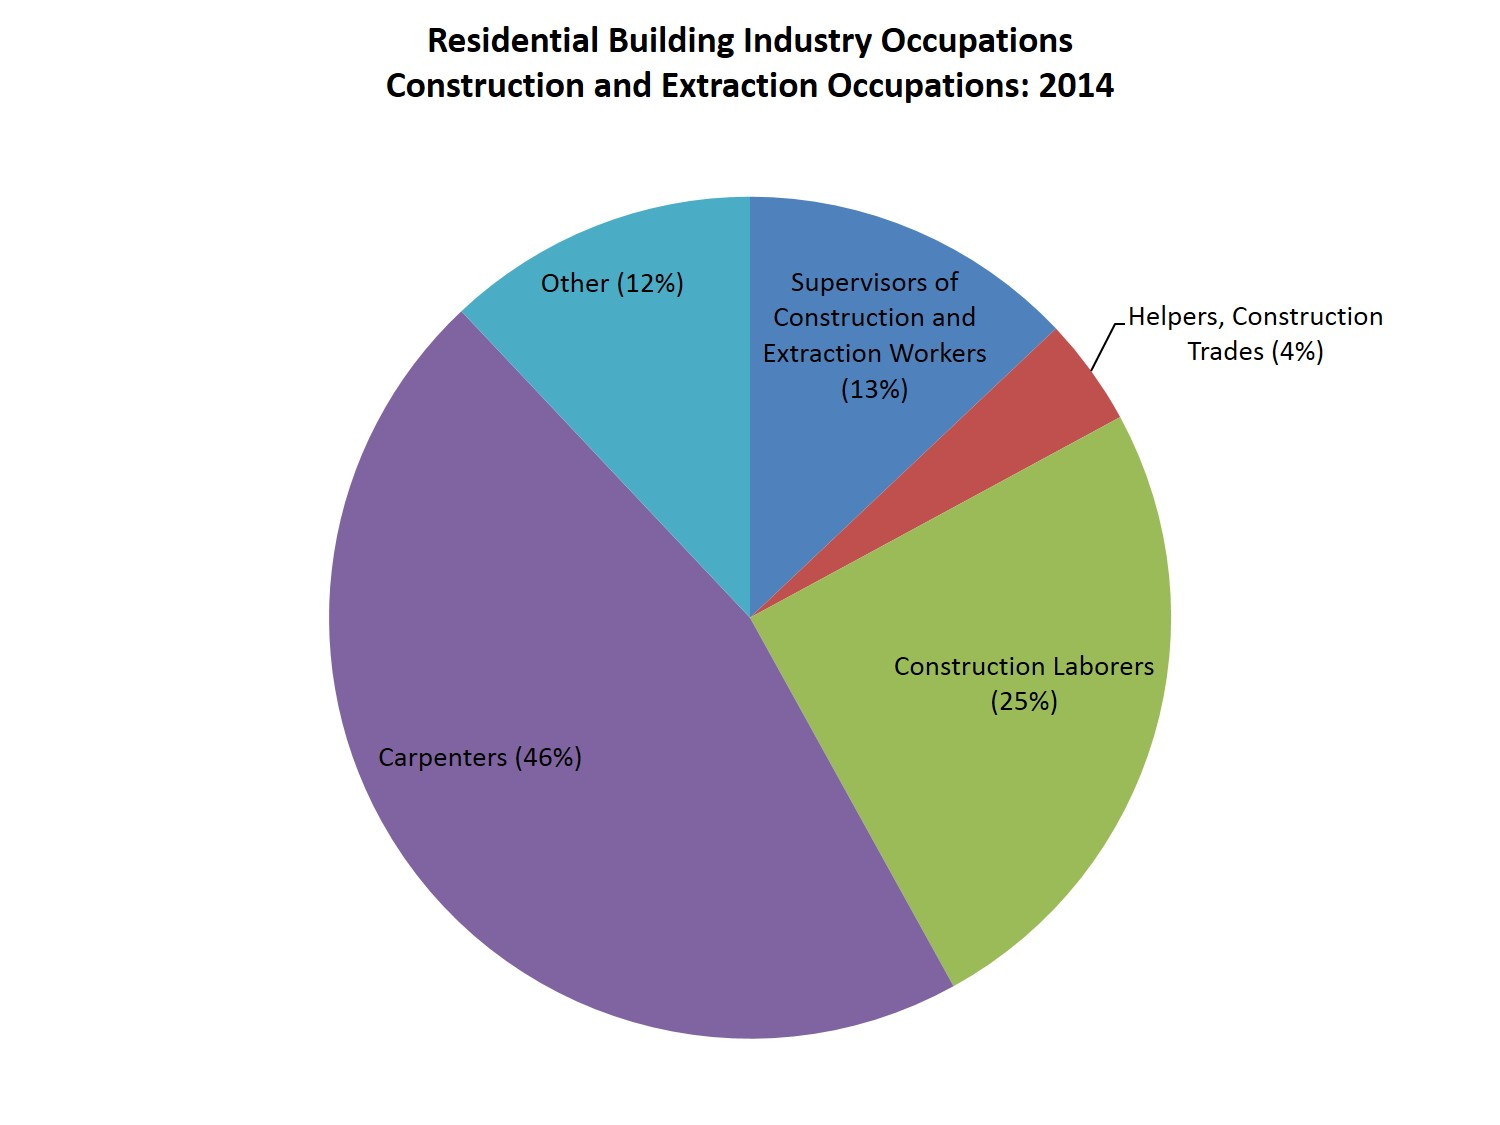 Construction Steel Market Occupations In The Home Building And Remodeling Industry